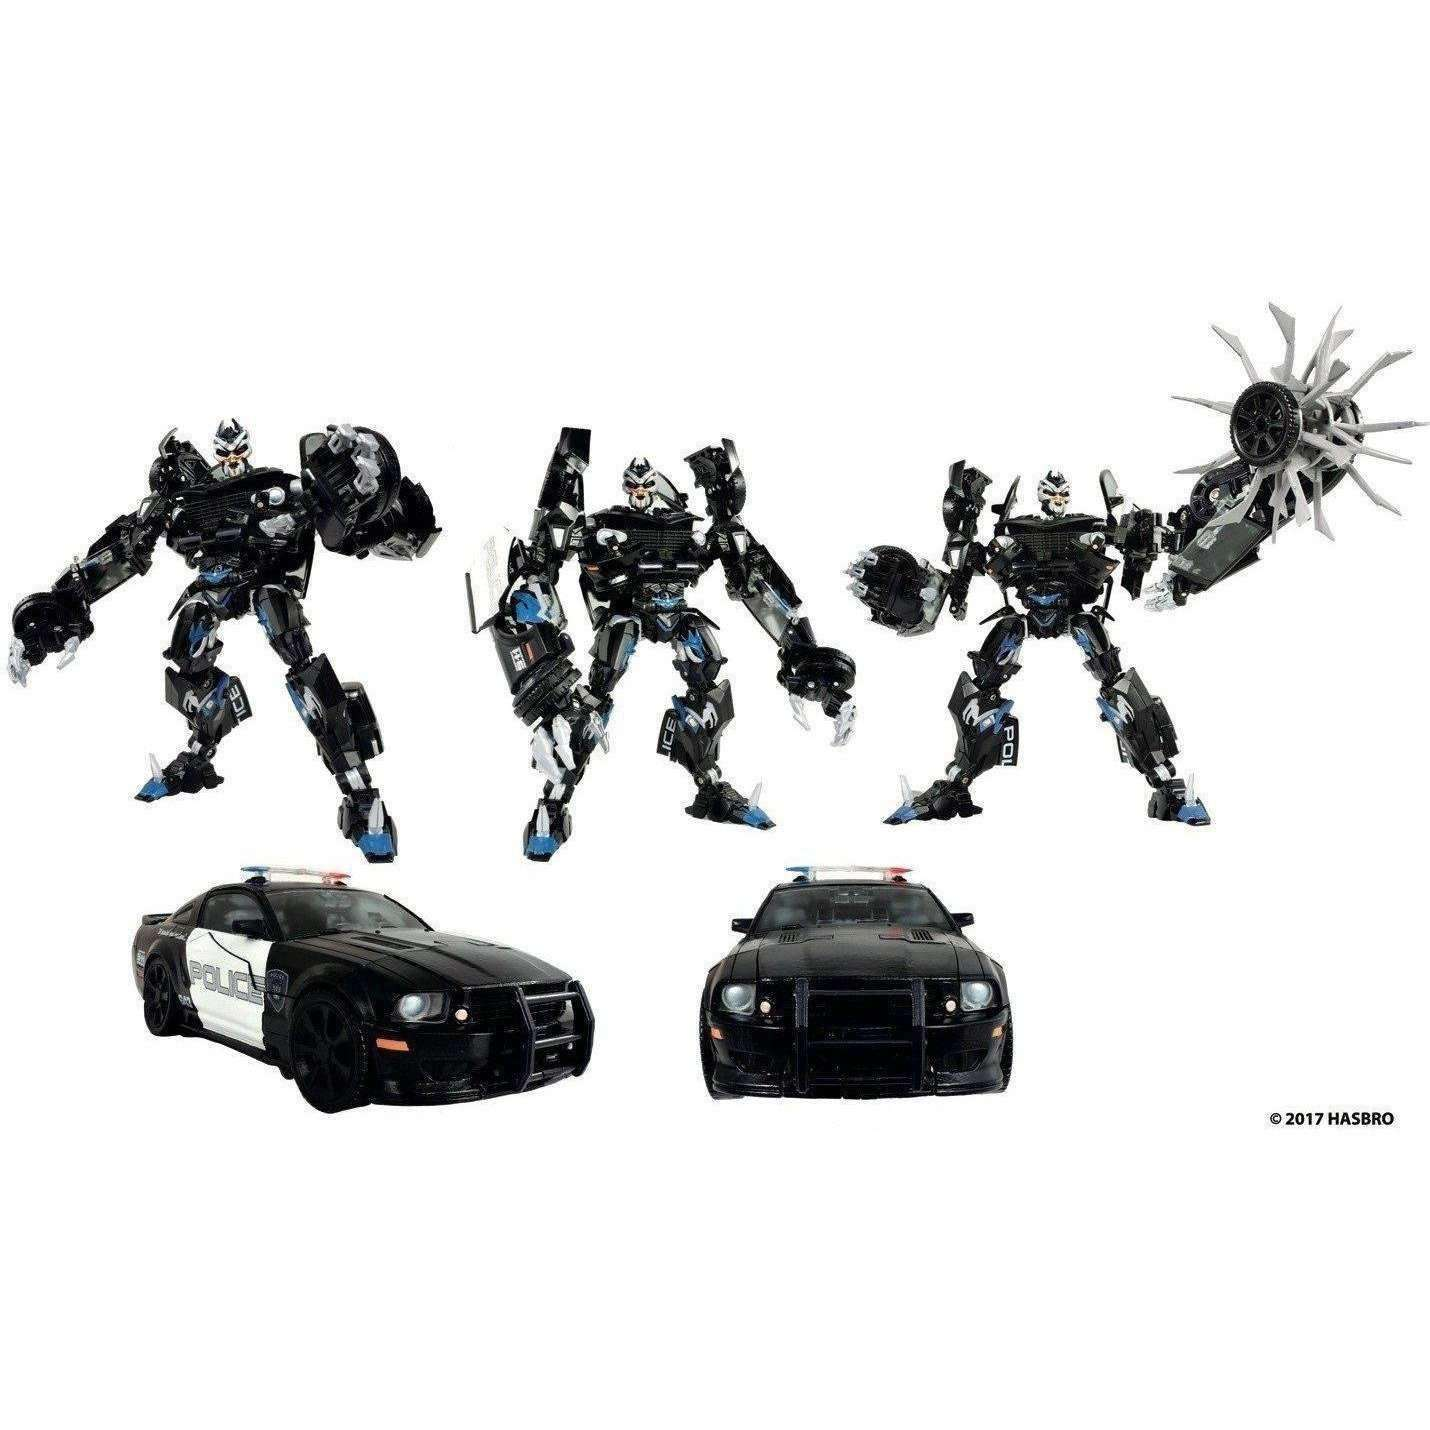 super popular c438b f1788 Transformers Masterpiece - Movie Series - MPM-5 Decepticon Barricade -  Megalopolis.toys